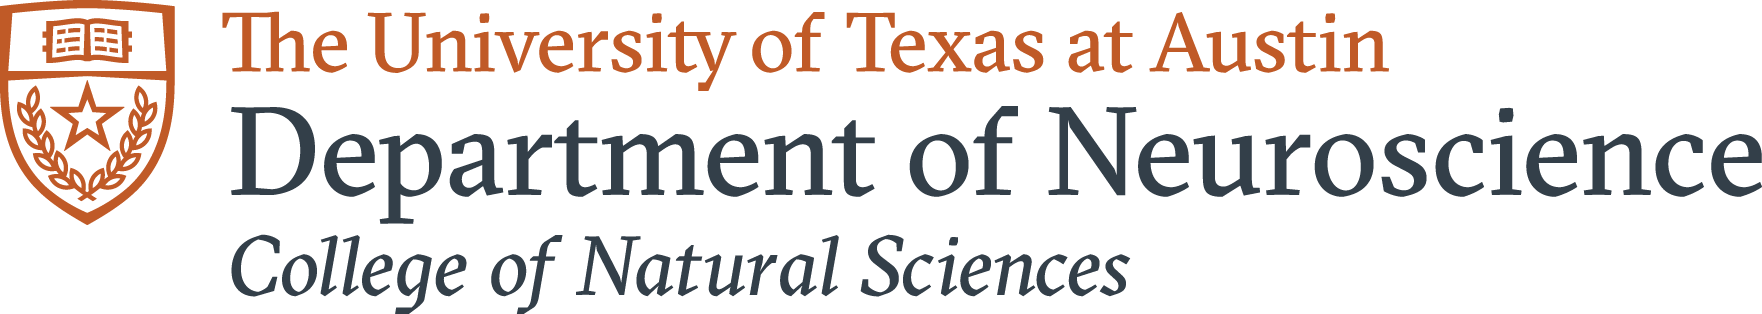 University of Texas Neuroscience